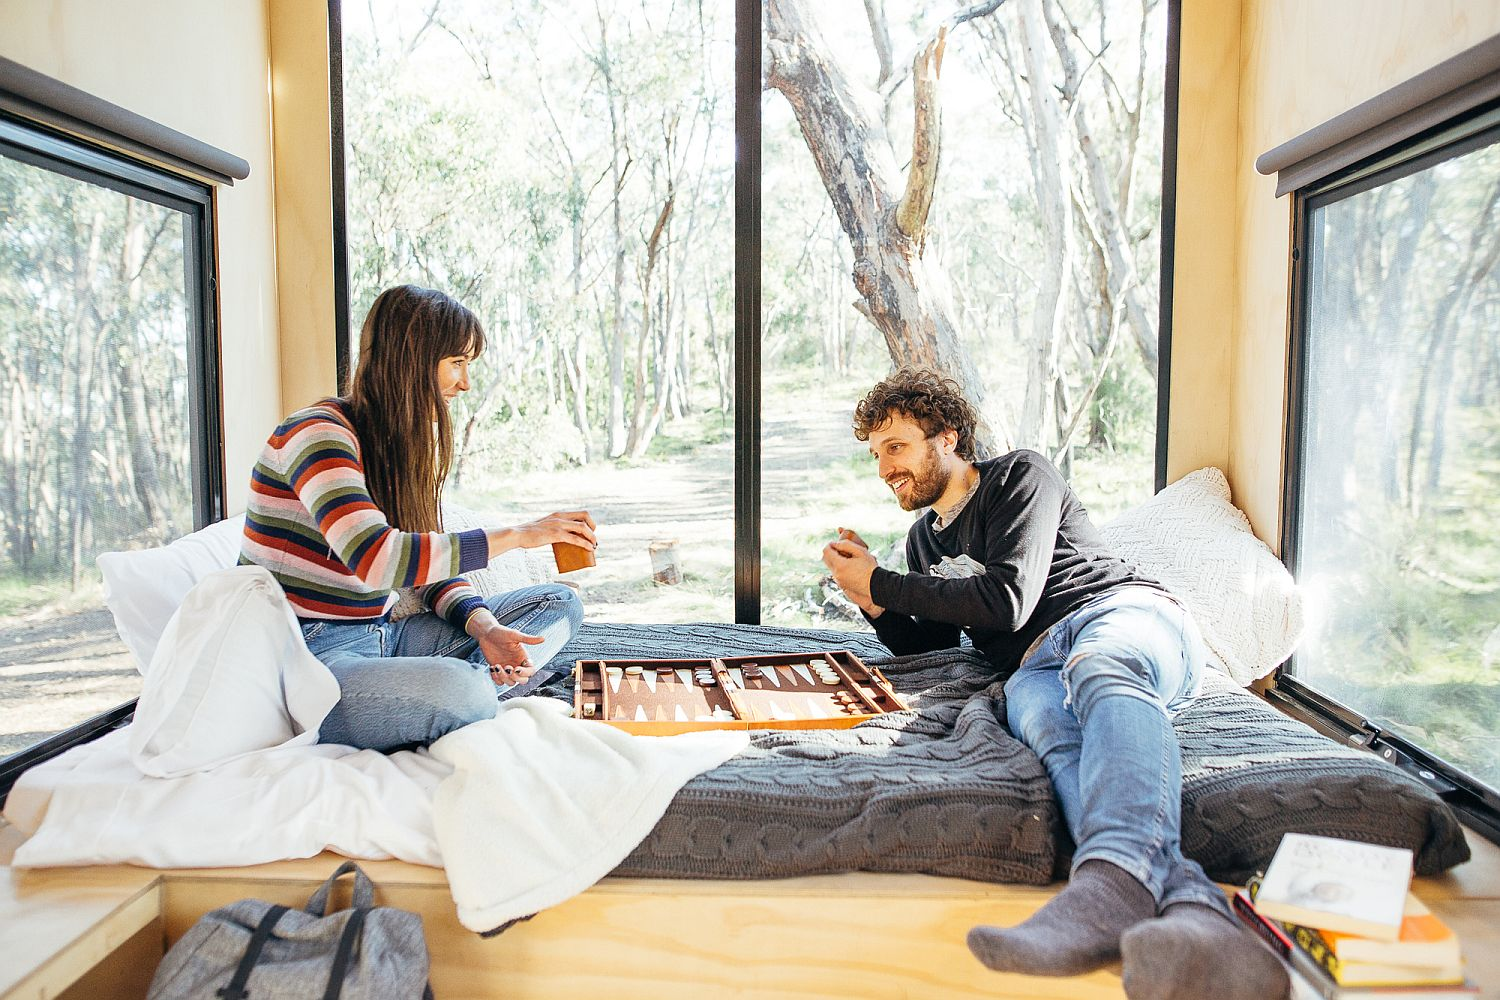 Tiny 15 sqaure meter cabin in Adelaide Hills takes you away from urban rush